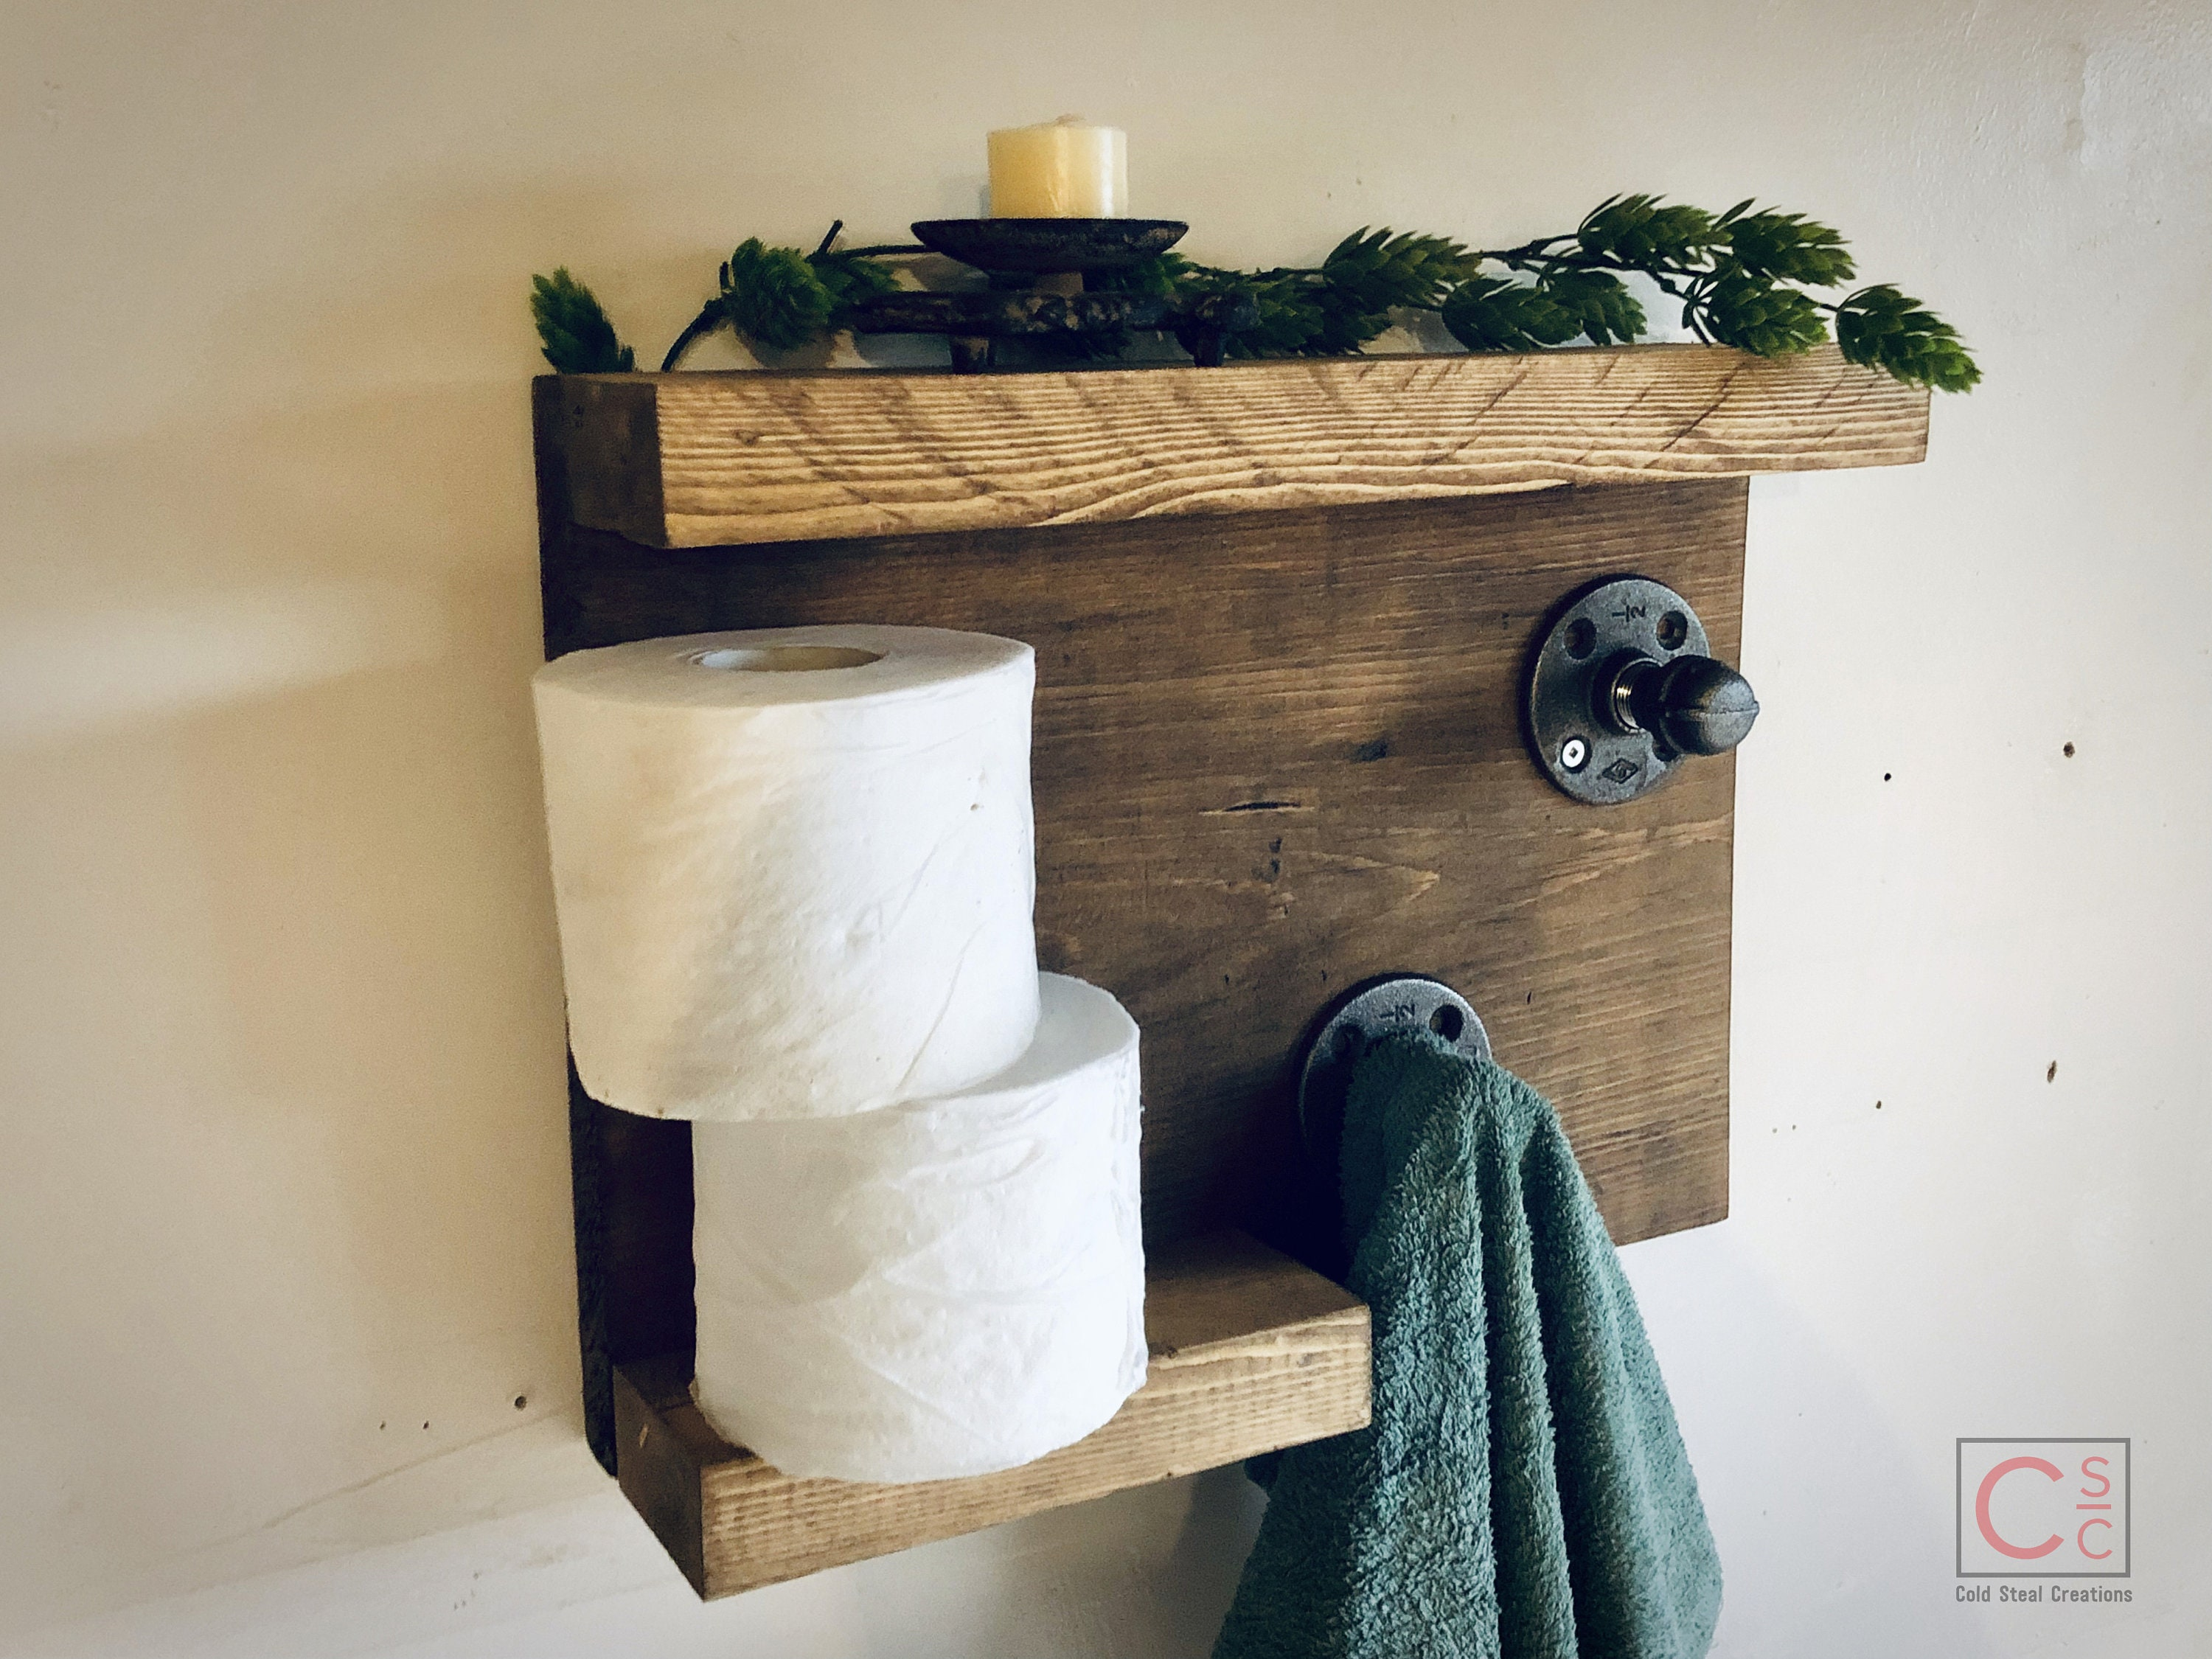 Unique Bathroom Shelf With Industrial Towel Hooks Farmhouse Decor Country Rustic Storage Towel Holders And Hooks